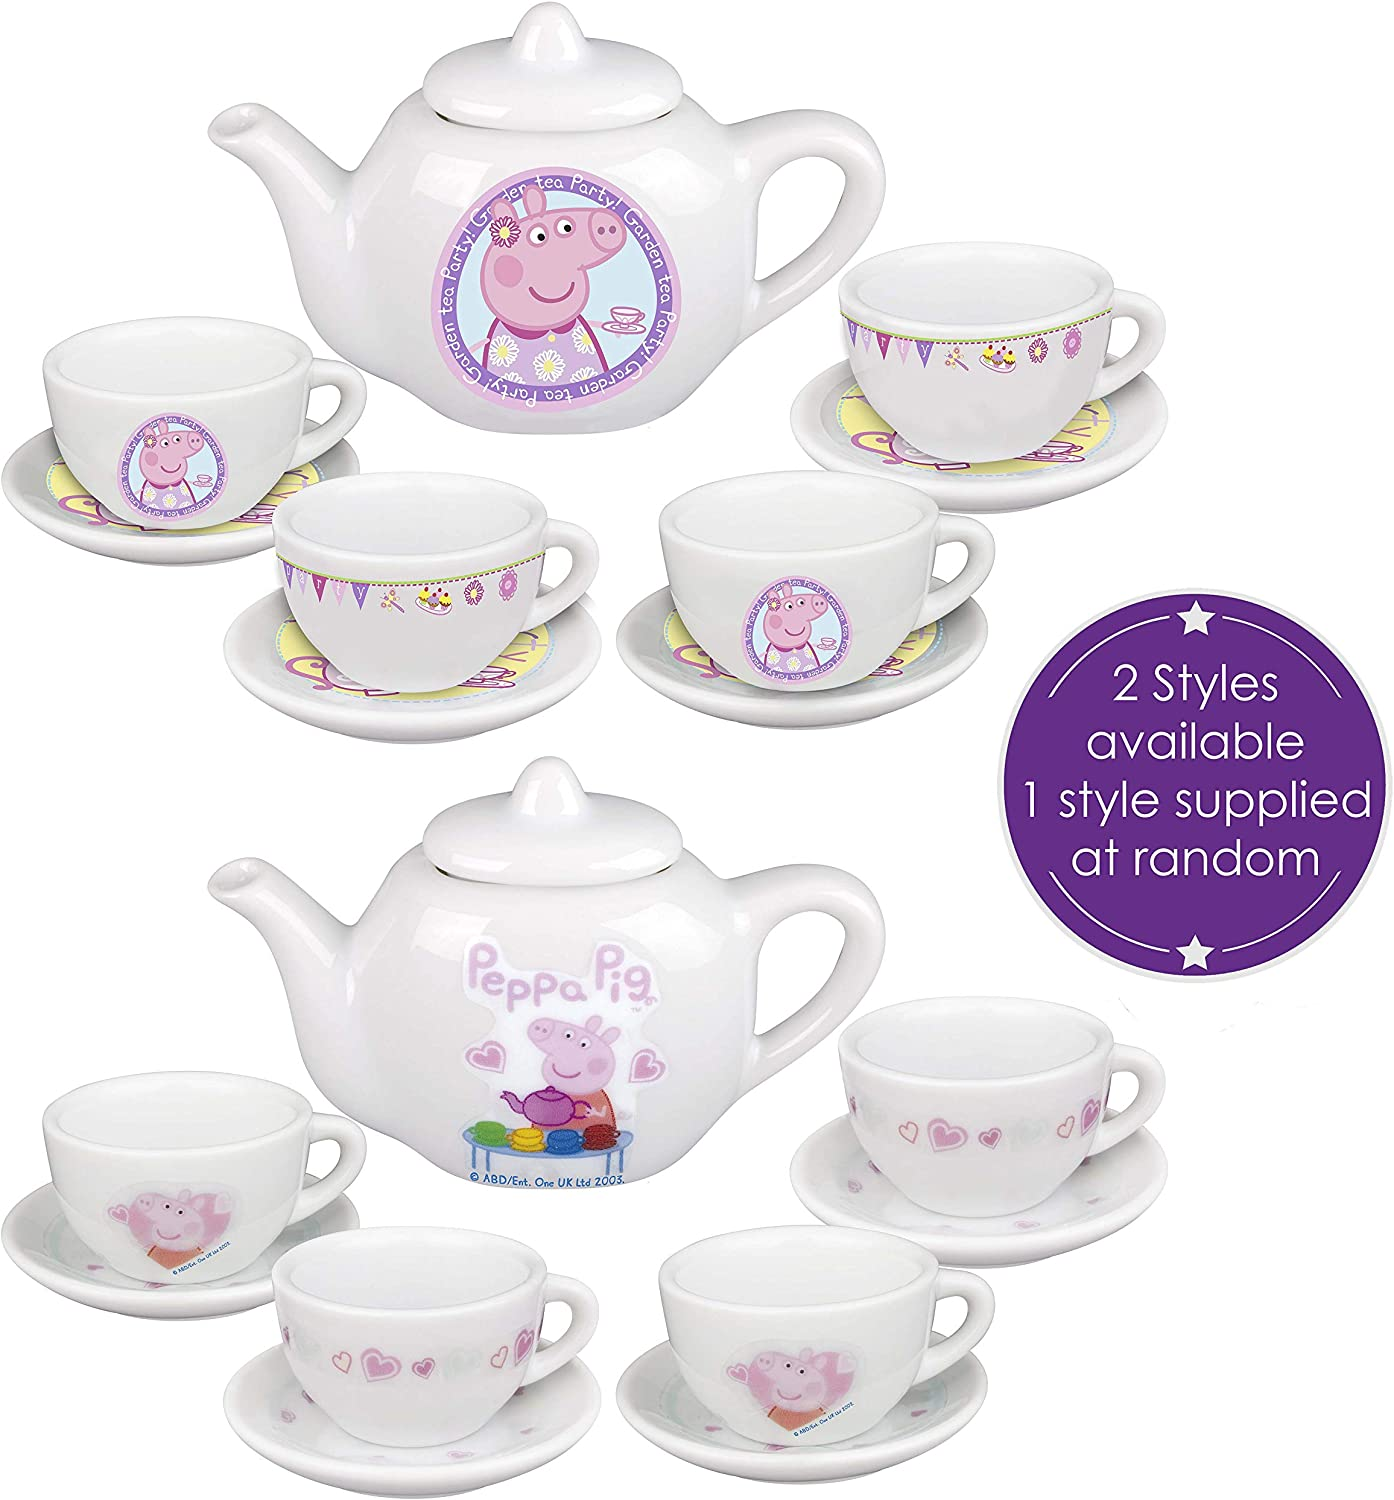 Peppa Pig Small Tea Set